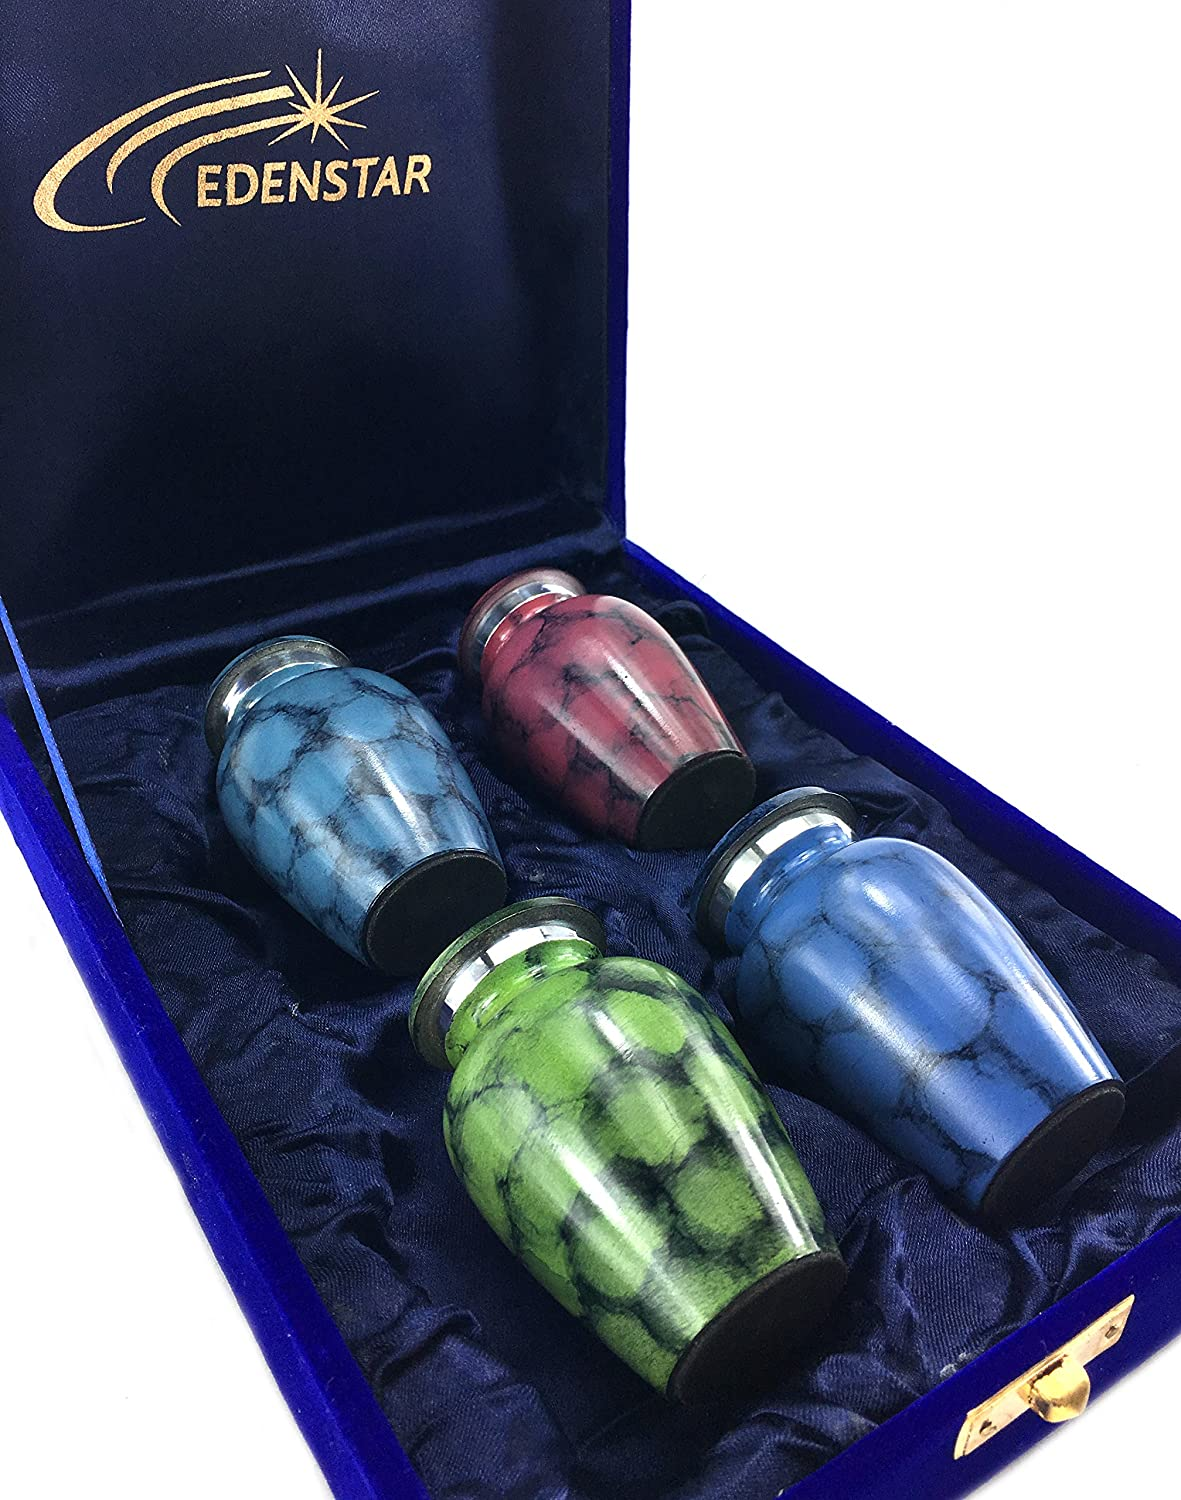 EDENSTAR NEXTG Premium Quality Memorial Mini Keepsake Urns Handcrafted to Perfection Engraved with Unique Design Small Keepsakes Cremation Urn for Ashes Handmade Funeral Urns Set of Four